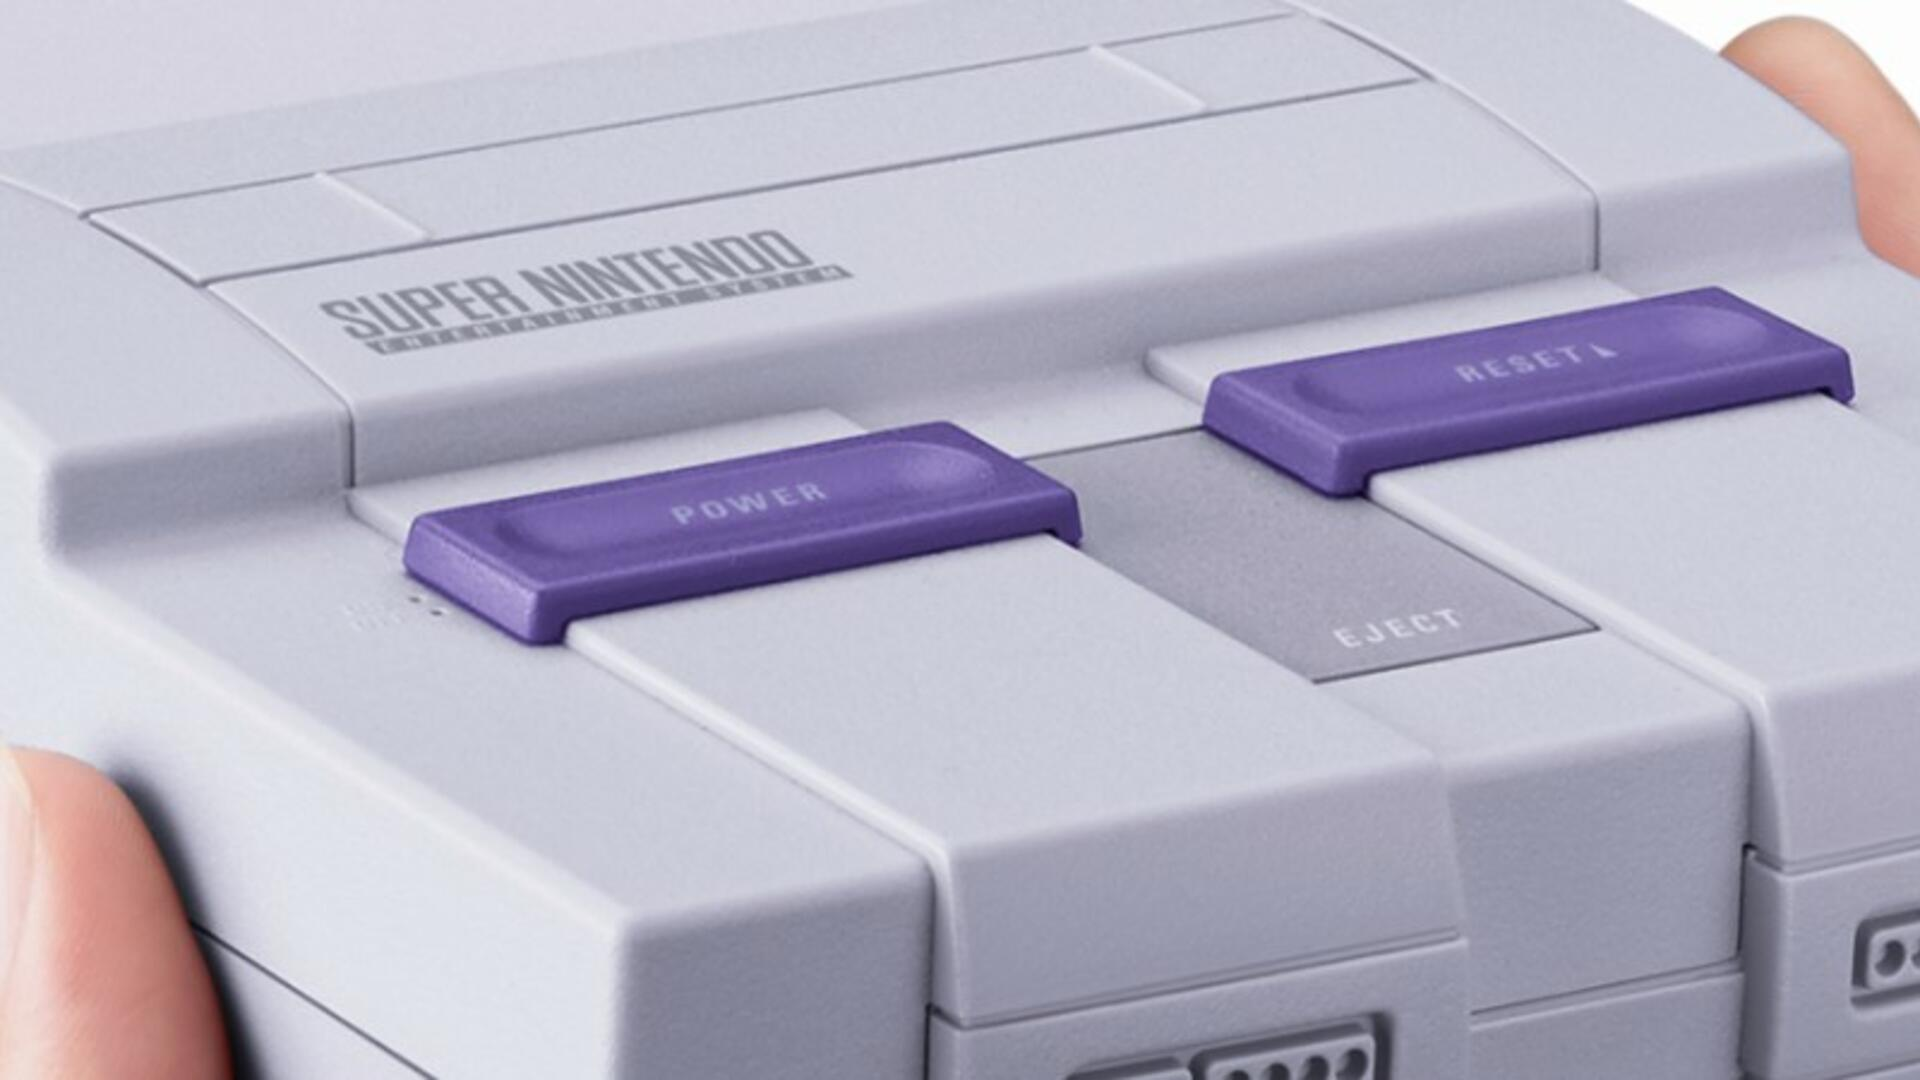 SNES Classic Game Cheats, Level Selects, Codes, Unlocks